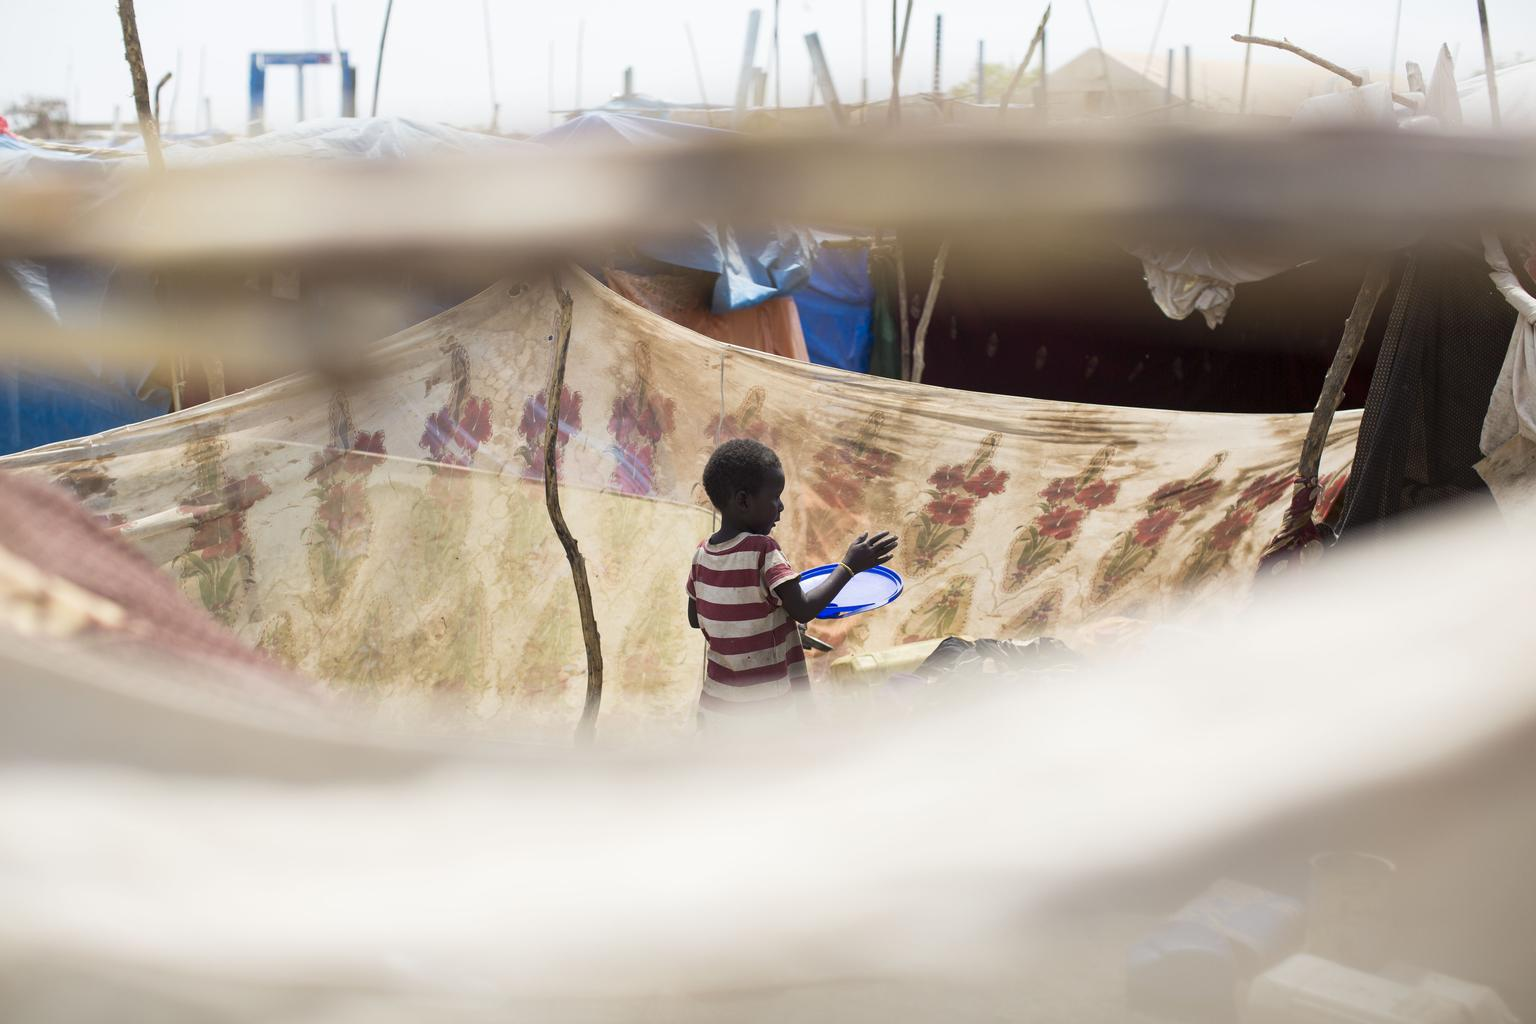 A girl stands inside the tent where she and her family now live in a camp for displaced people, located on the base of the United Nations peacekeeping mission in South Sudan, in the city of Malakal.